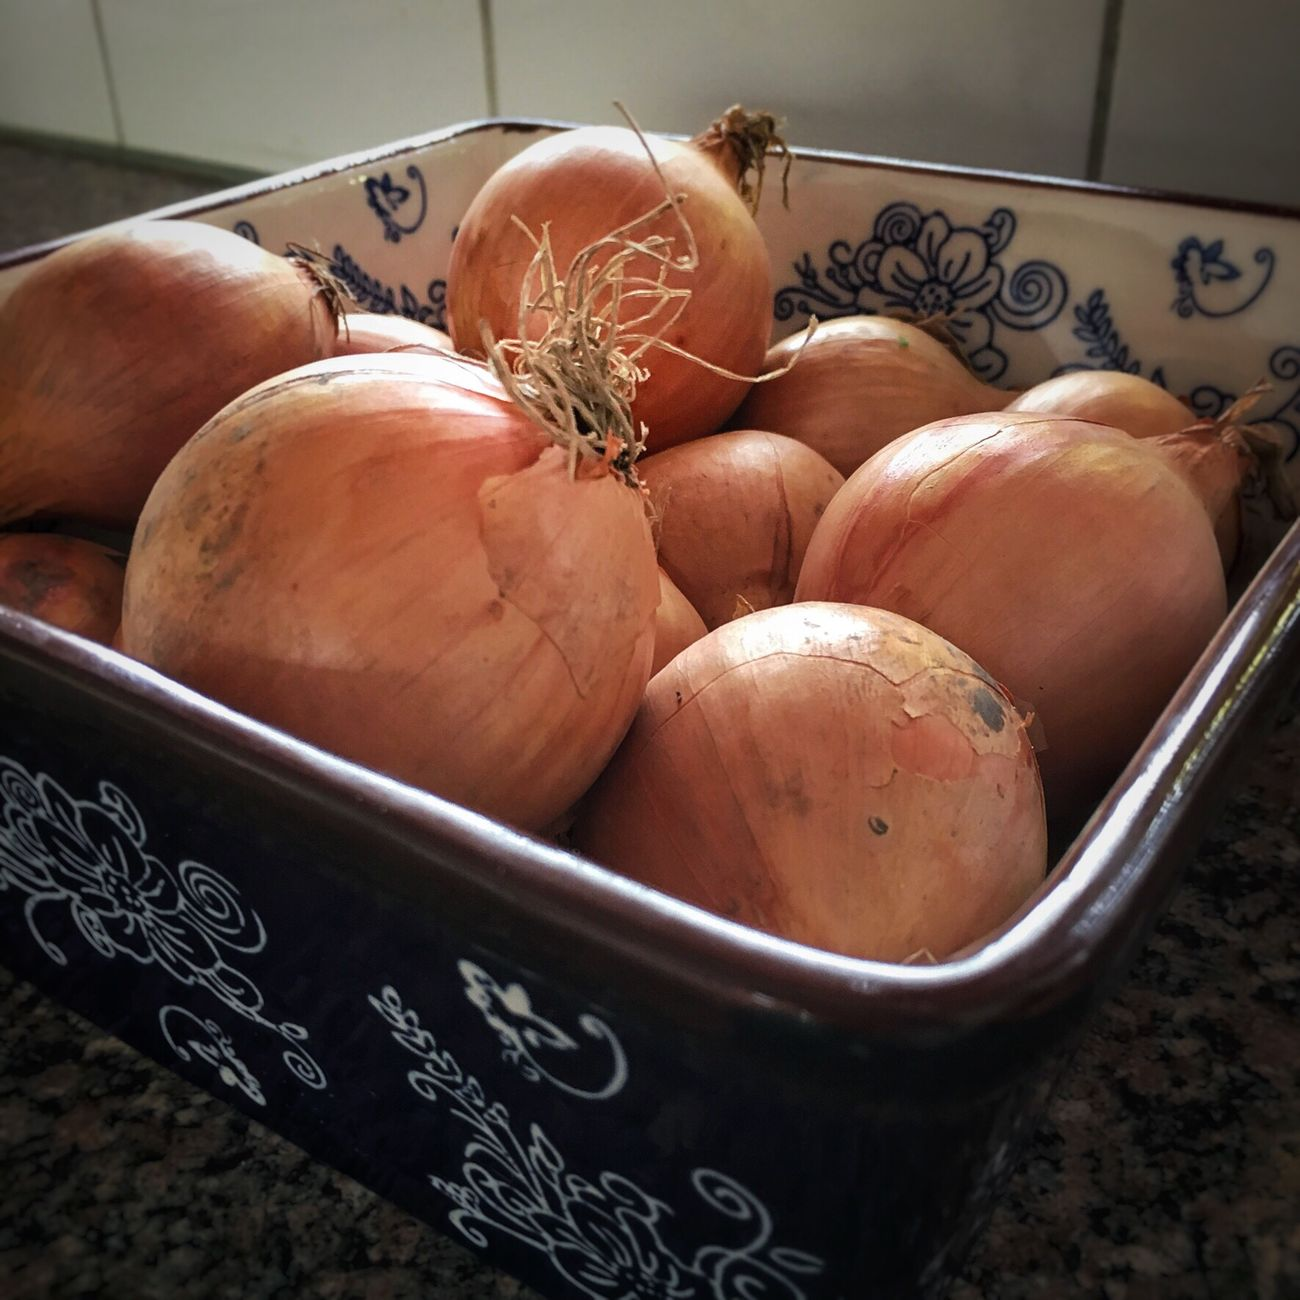 Kitchen Kitchen Art Food Food And Drink Freshness Healthy Eating No People Close-up Indoors  Pumpkin Day